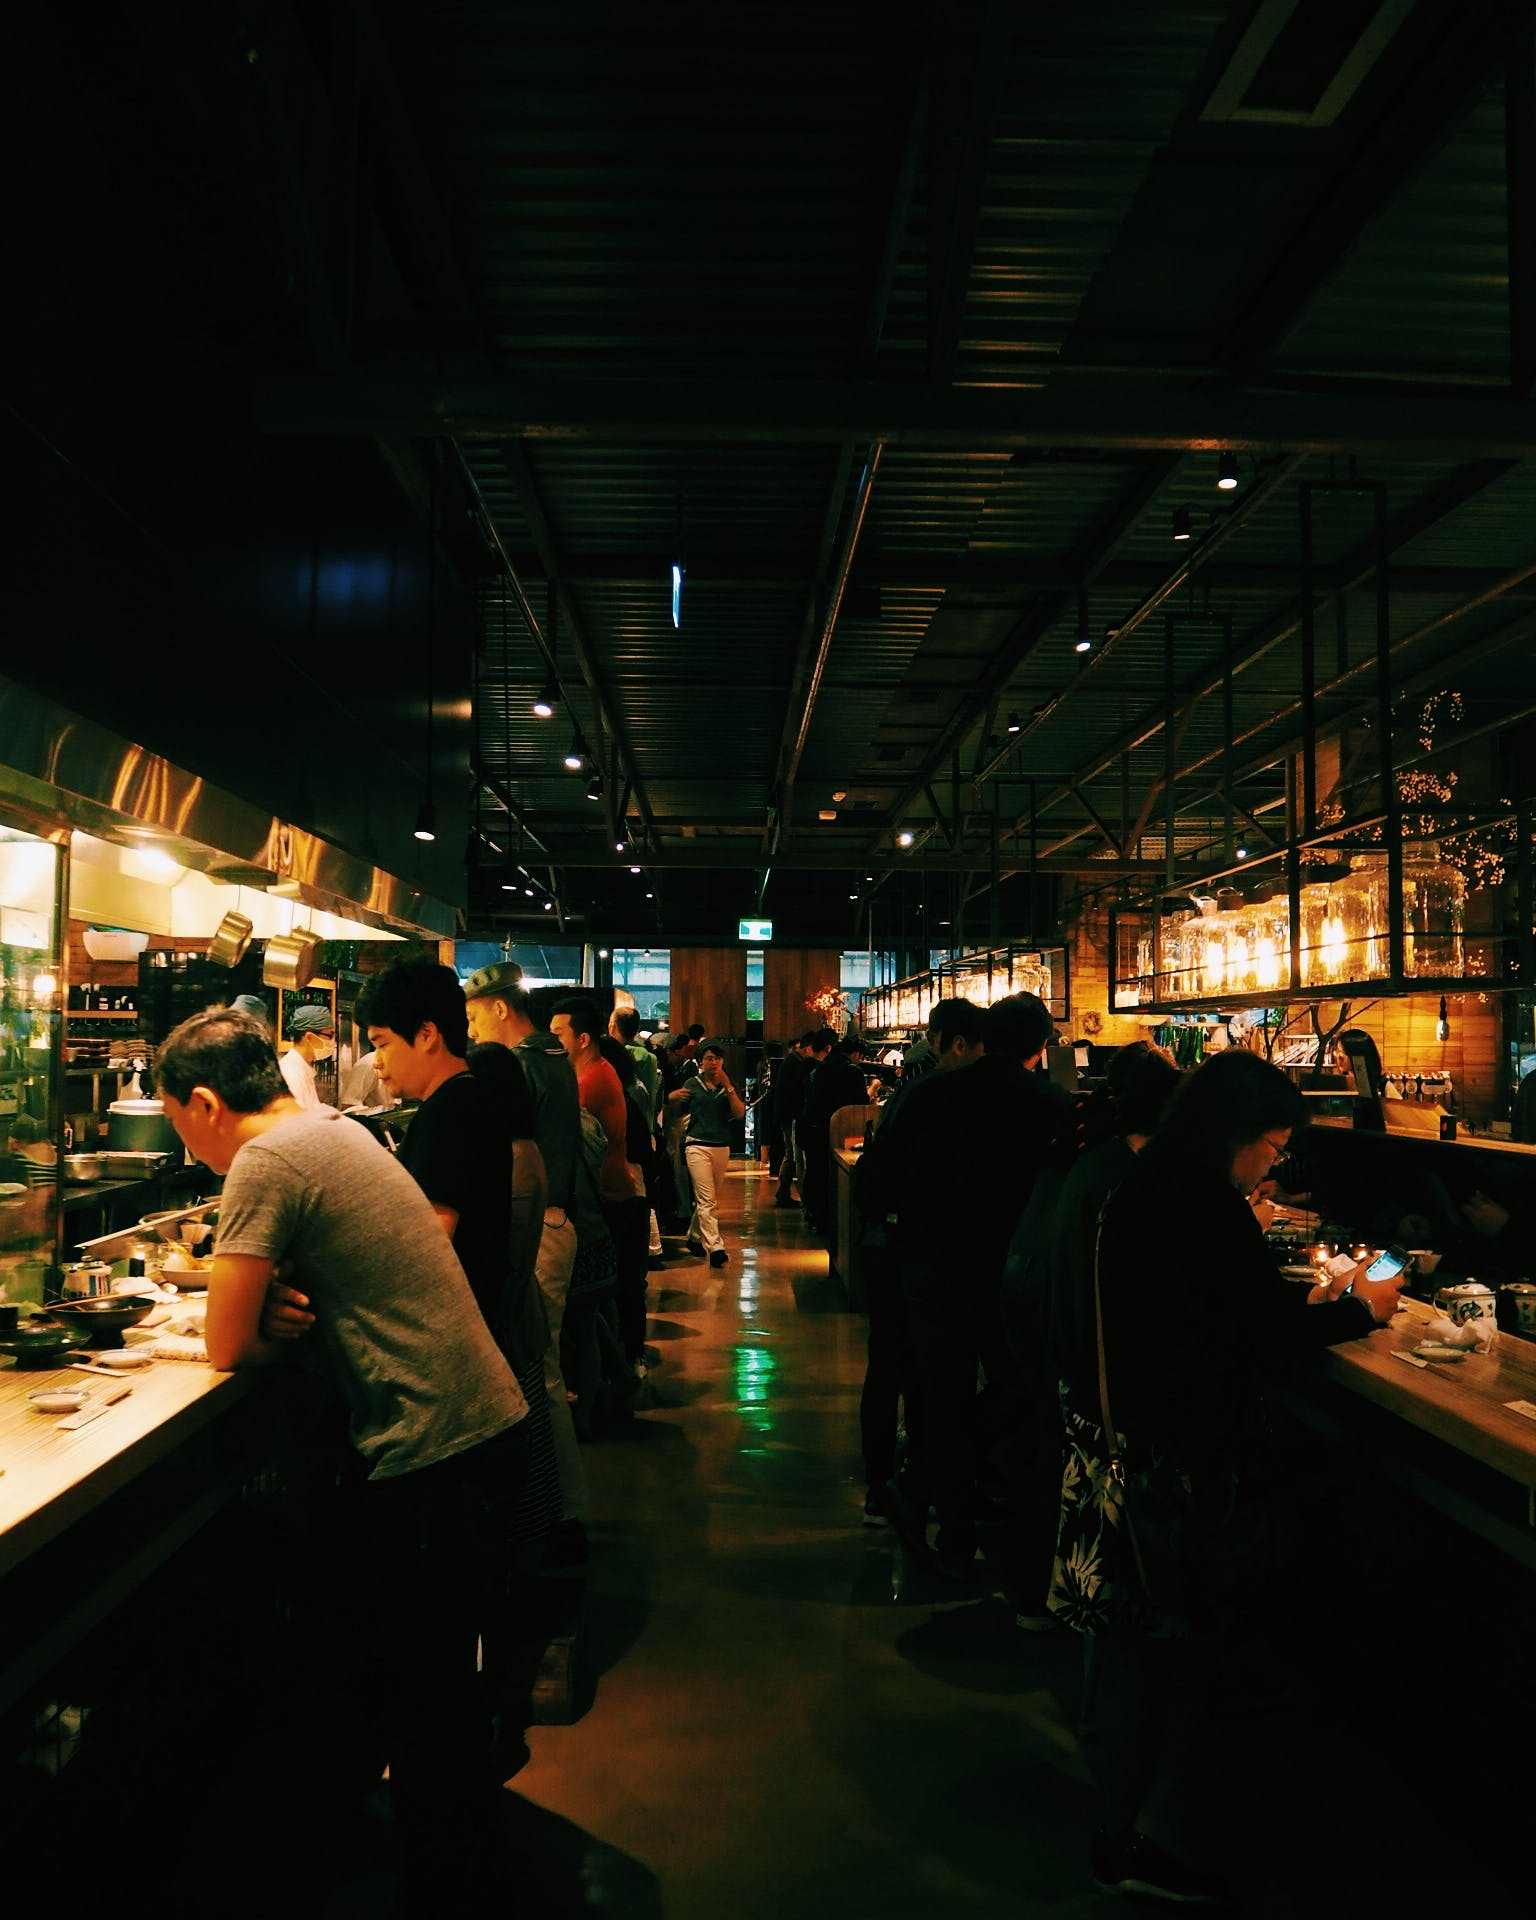 Photography of People Inside a Restaurant